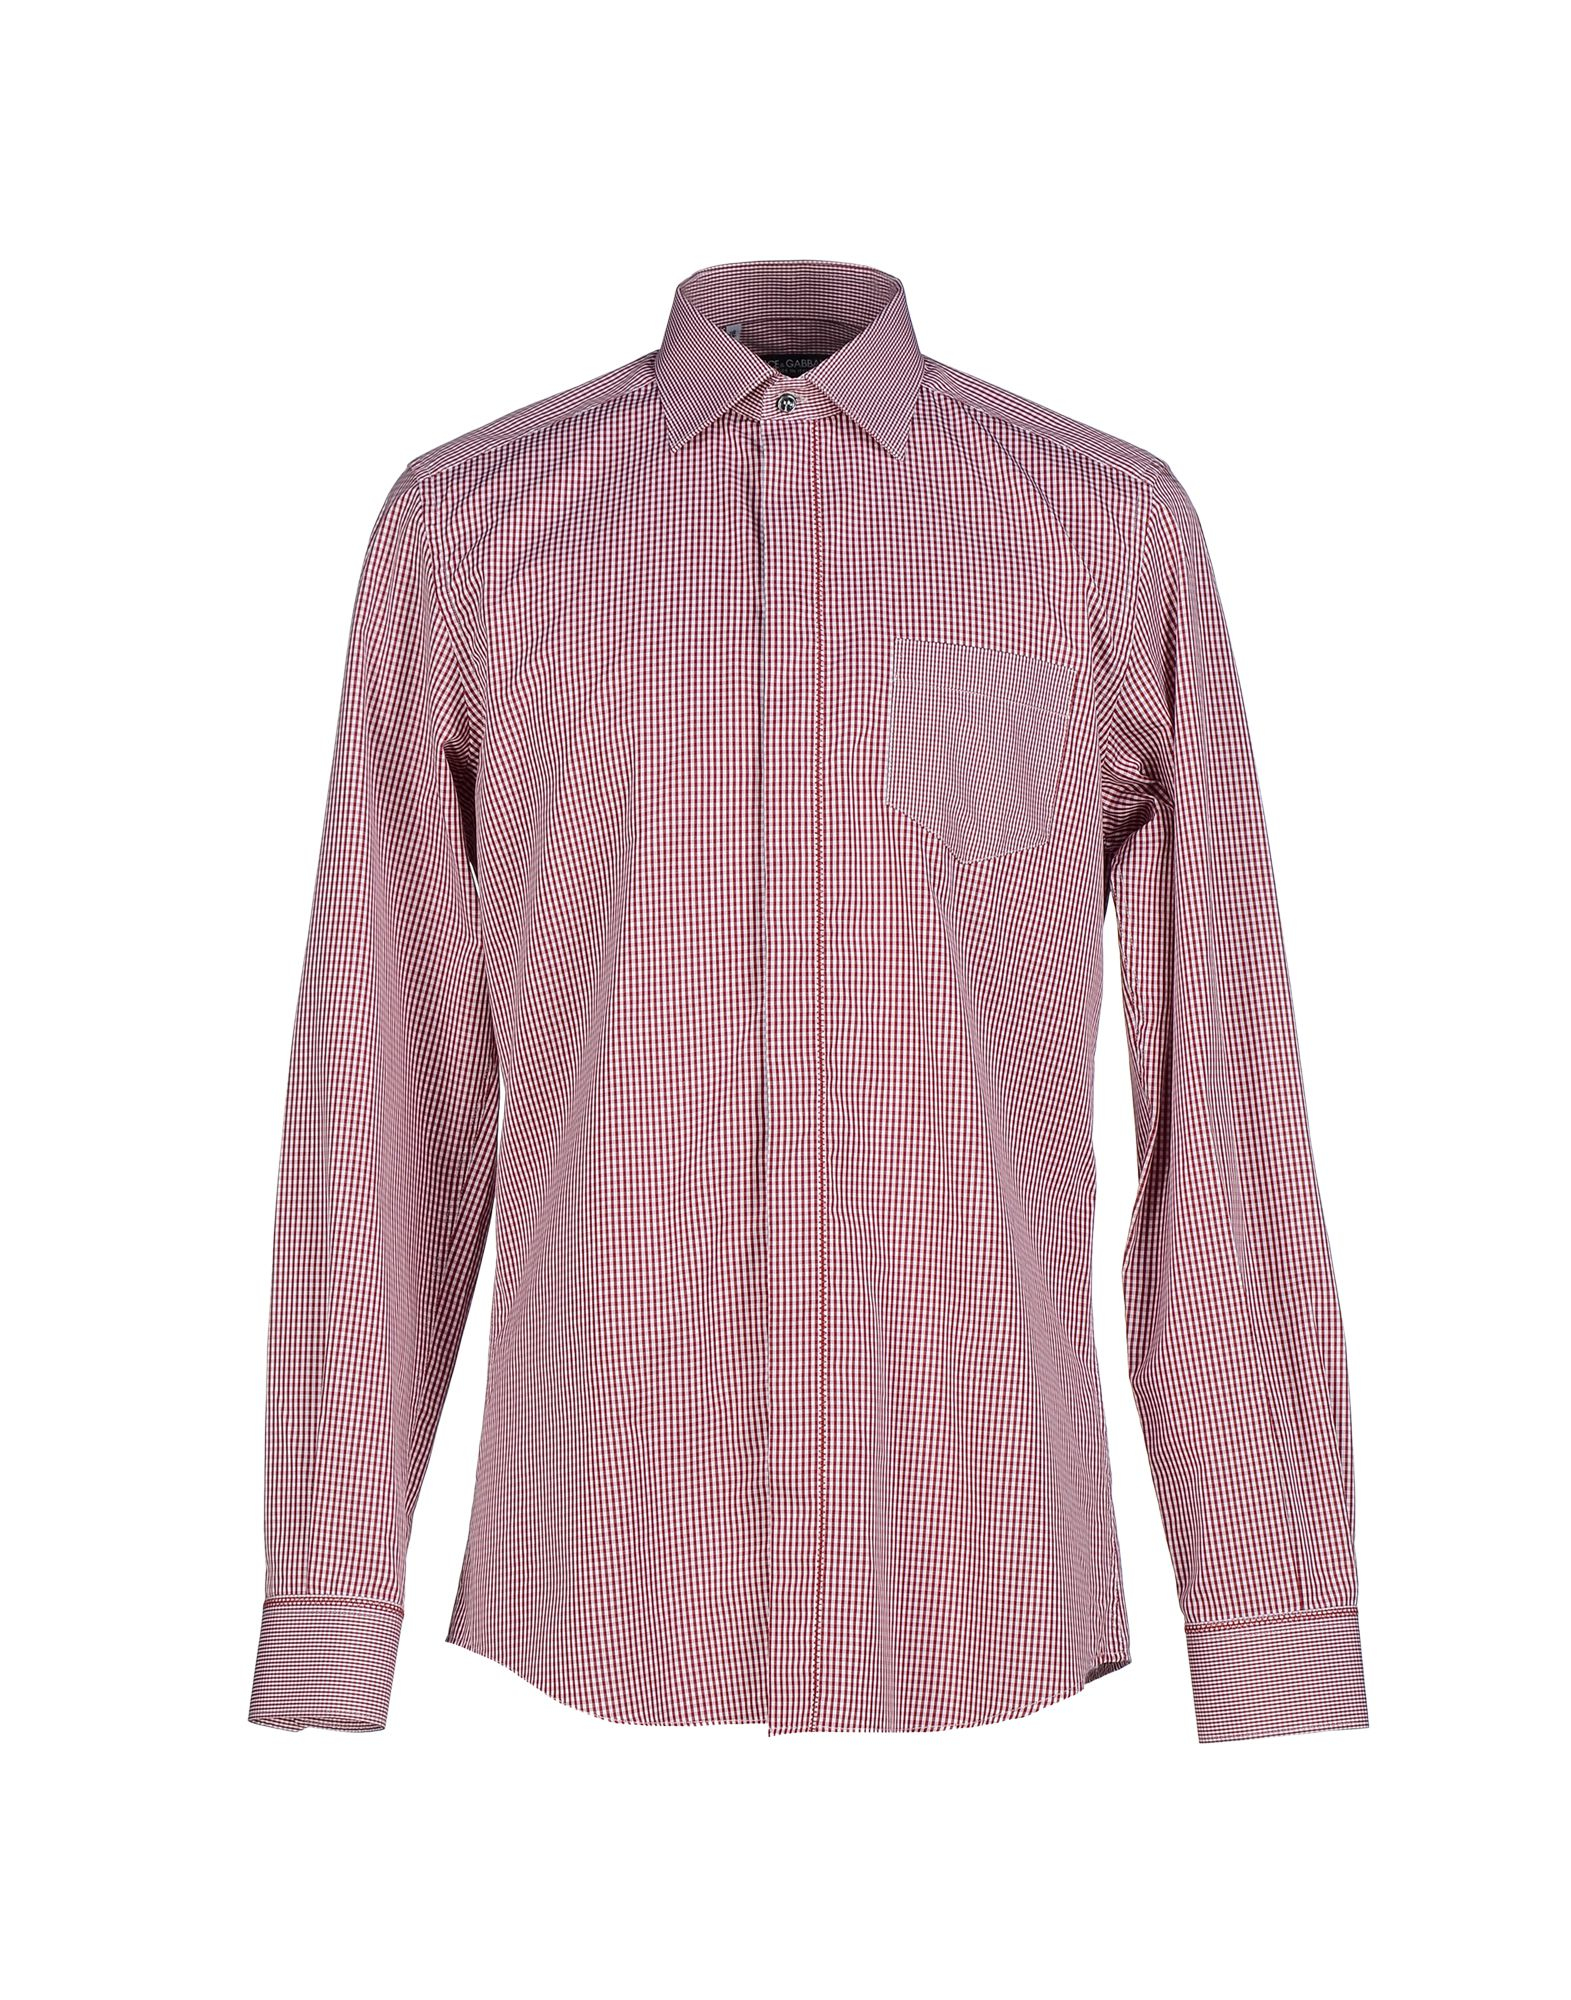 Dolce Gabbana Shirt In Red For Men Lyst